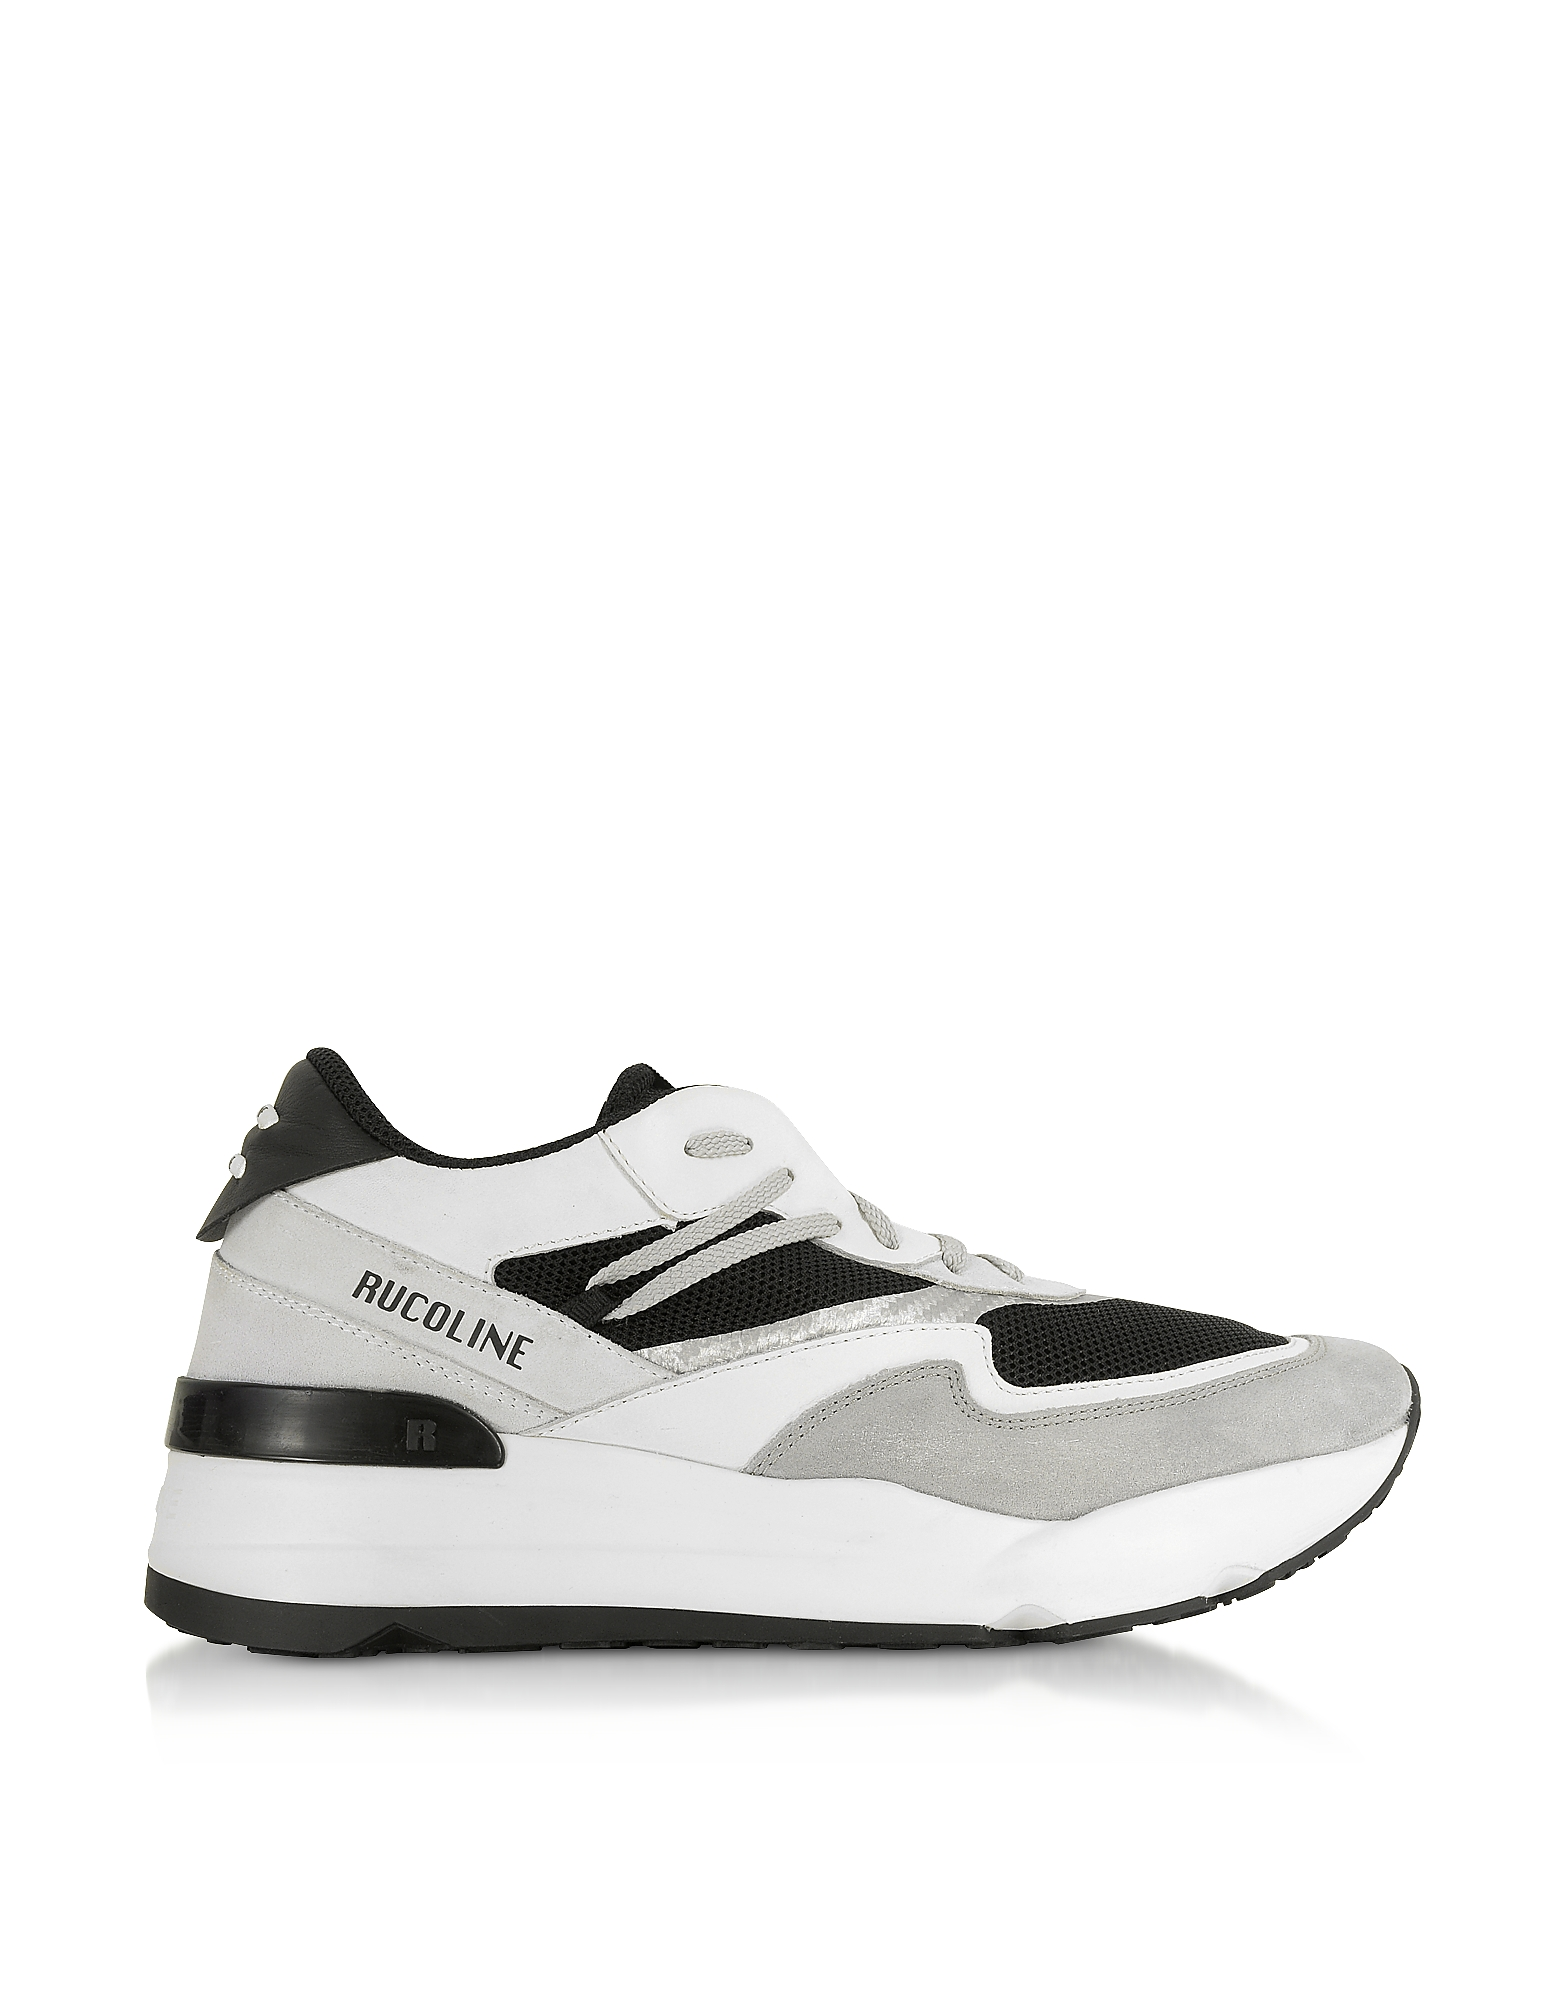 Rucoline Designer Shoes, Black & White Nylon and Leather R-Evolve Men's Sneakers